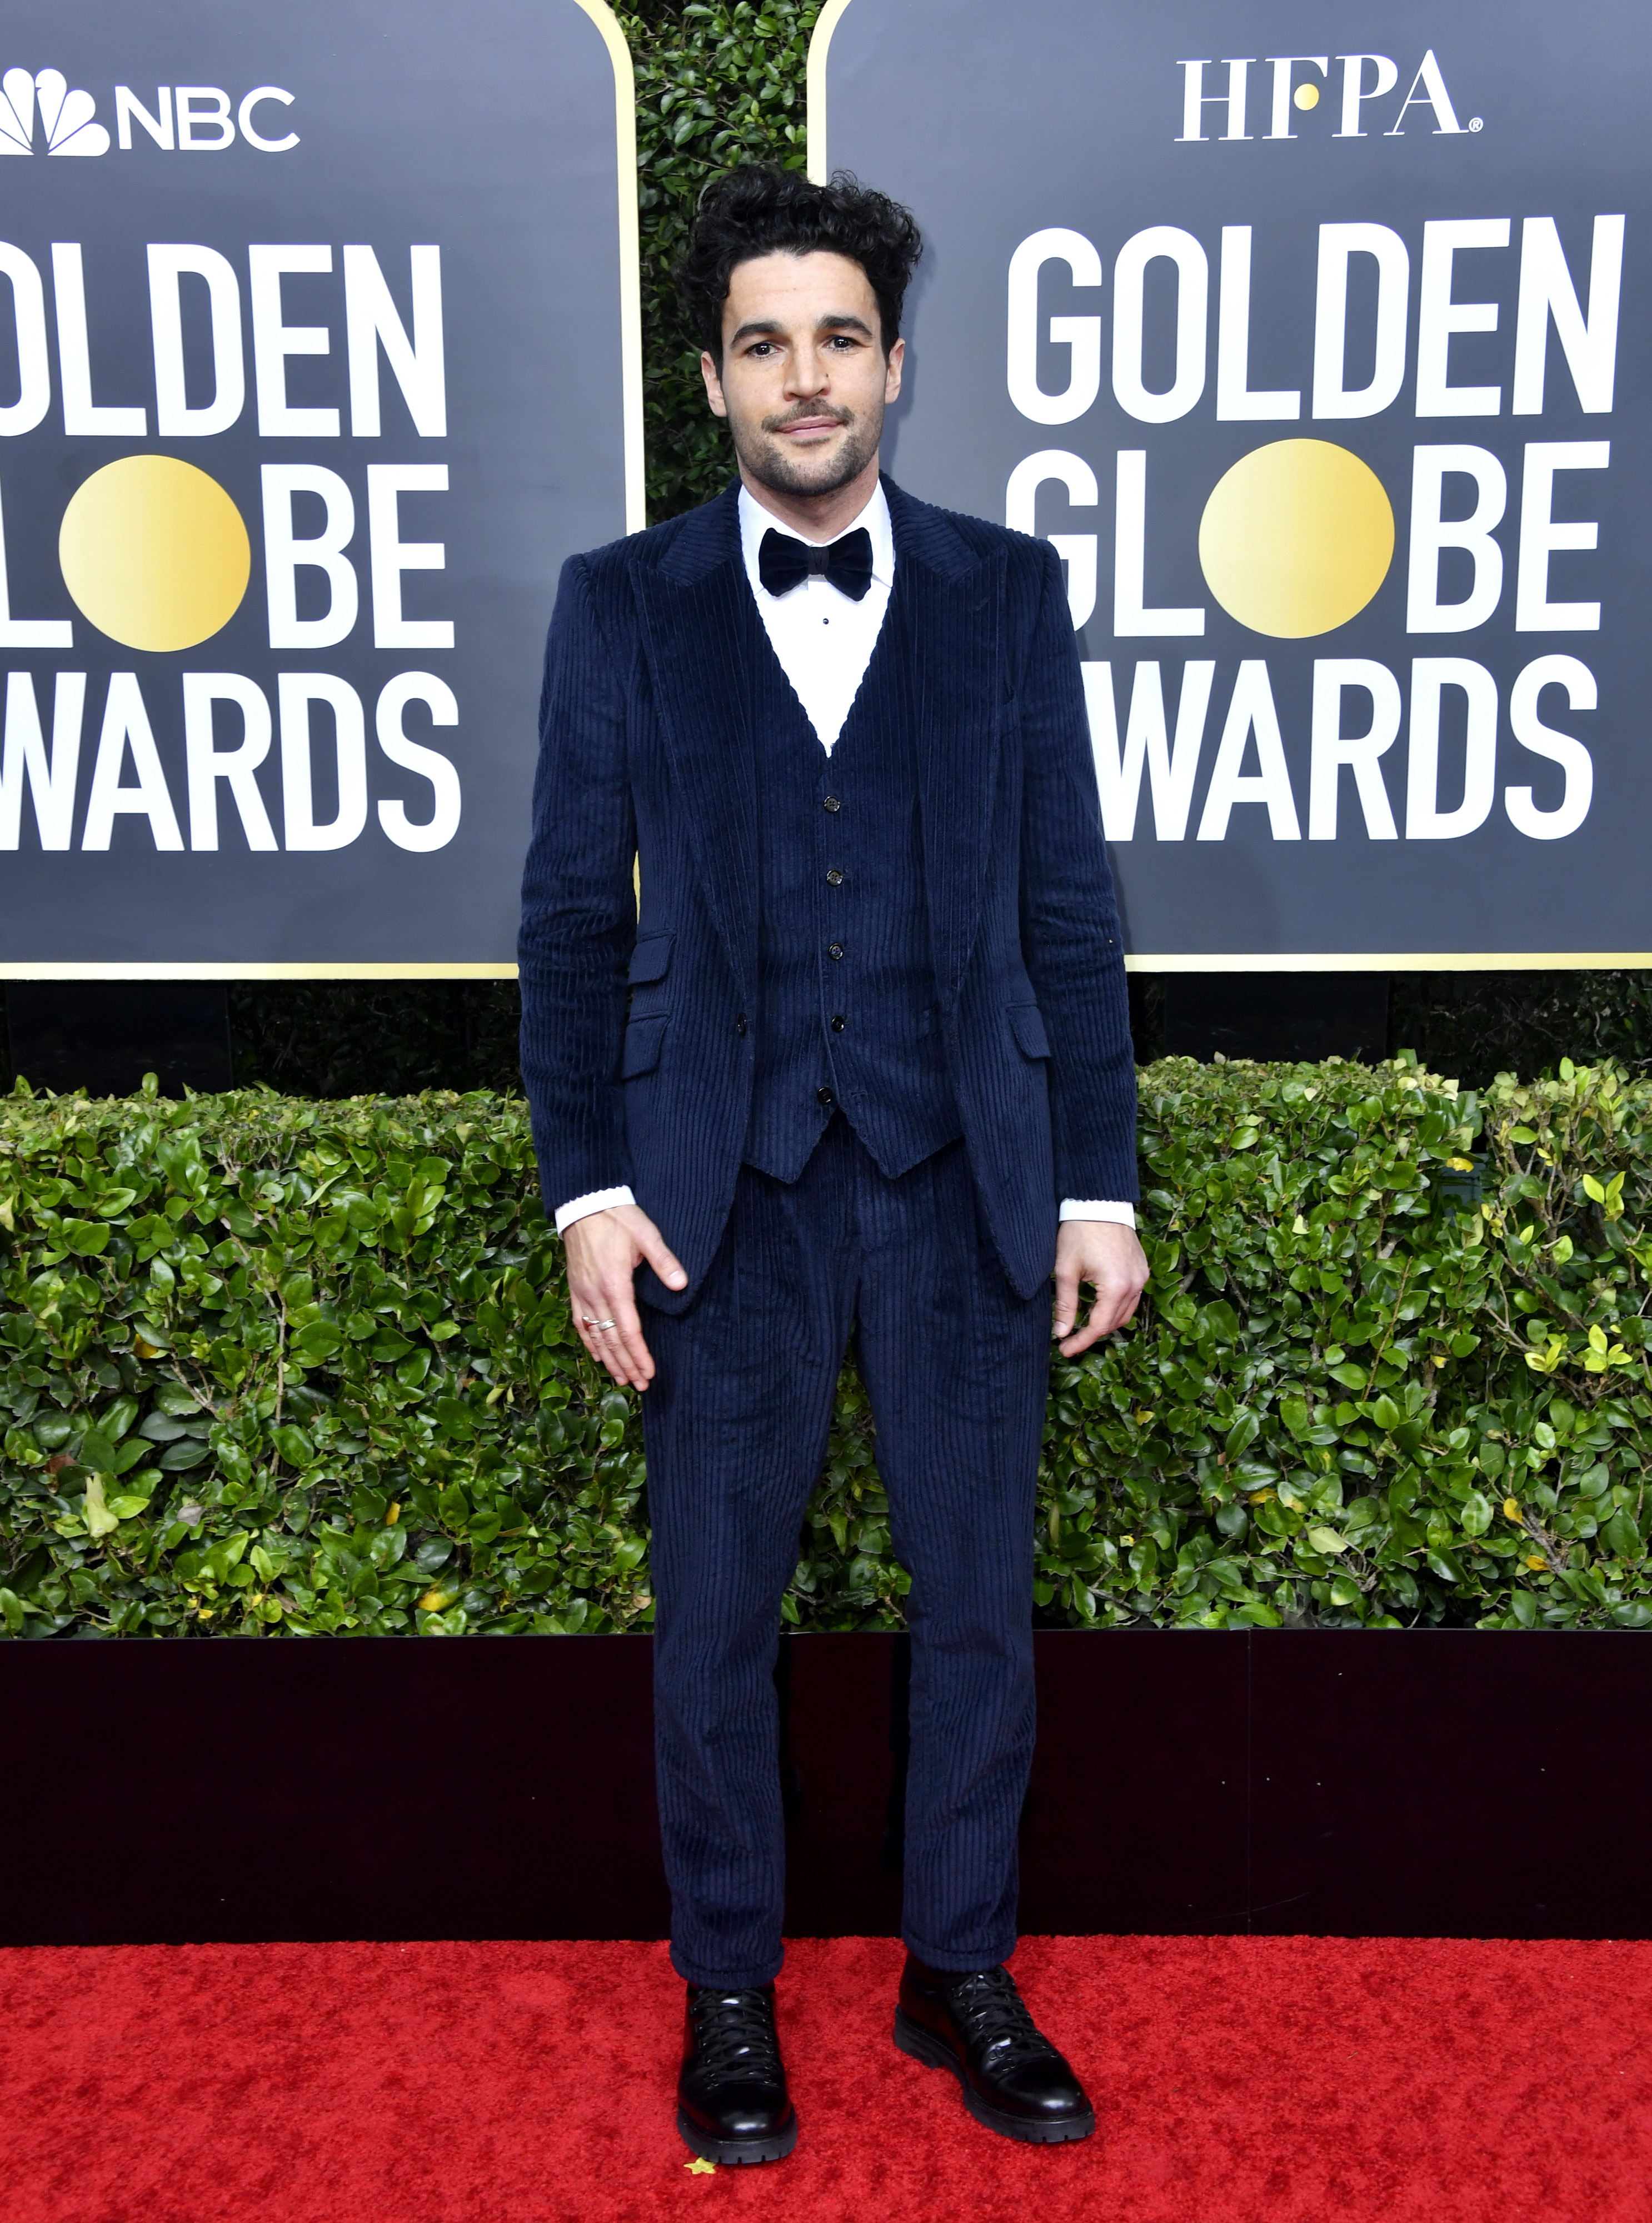 BEVERLY HILLS, CALIFORNIA - JANUARY 05: Christopher Abbott attends the 77th Annual Golden Globe Awards at The Beverly Hilton Hotel on January 05, 2020 in Beverly Hills, California. (Photo by Frazer Harrison/Getty Images)